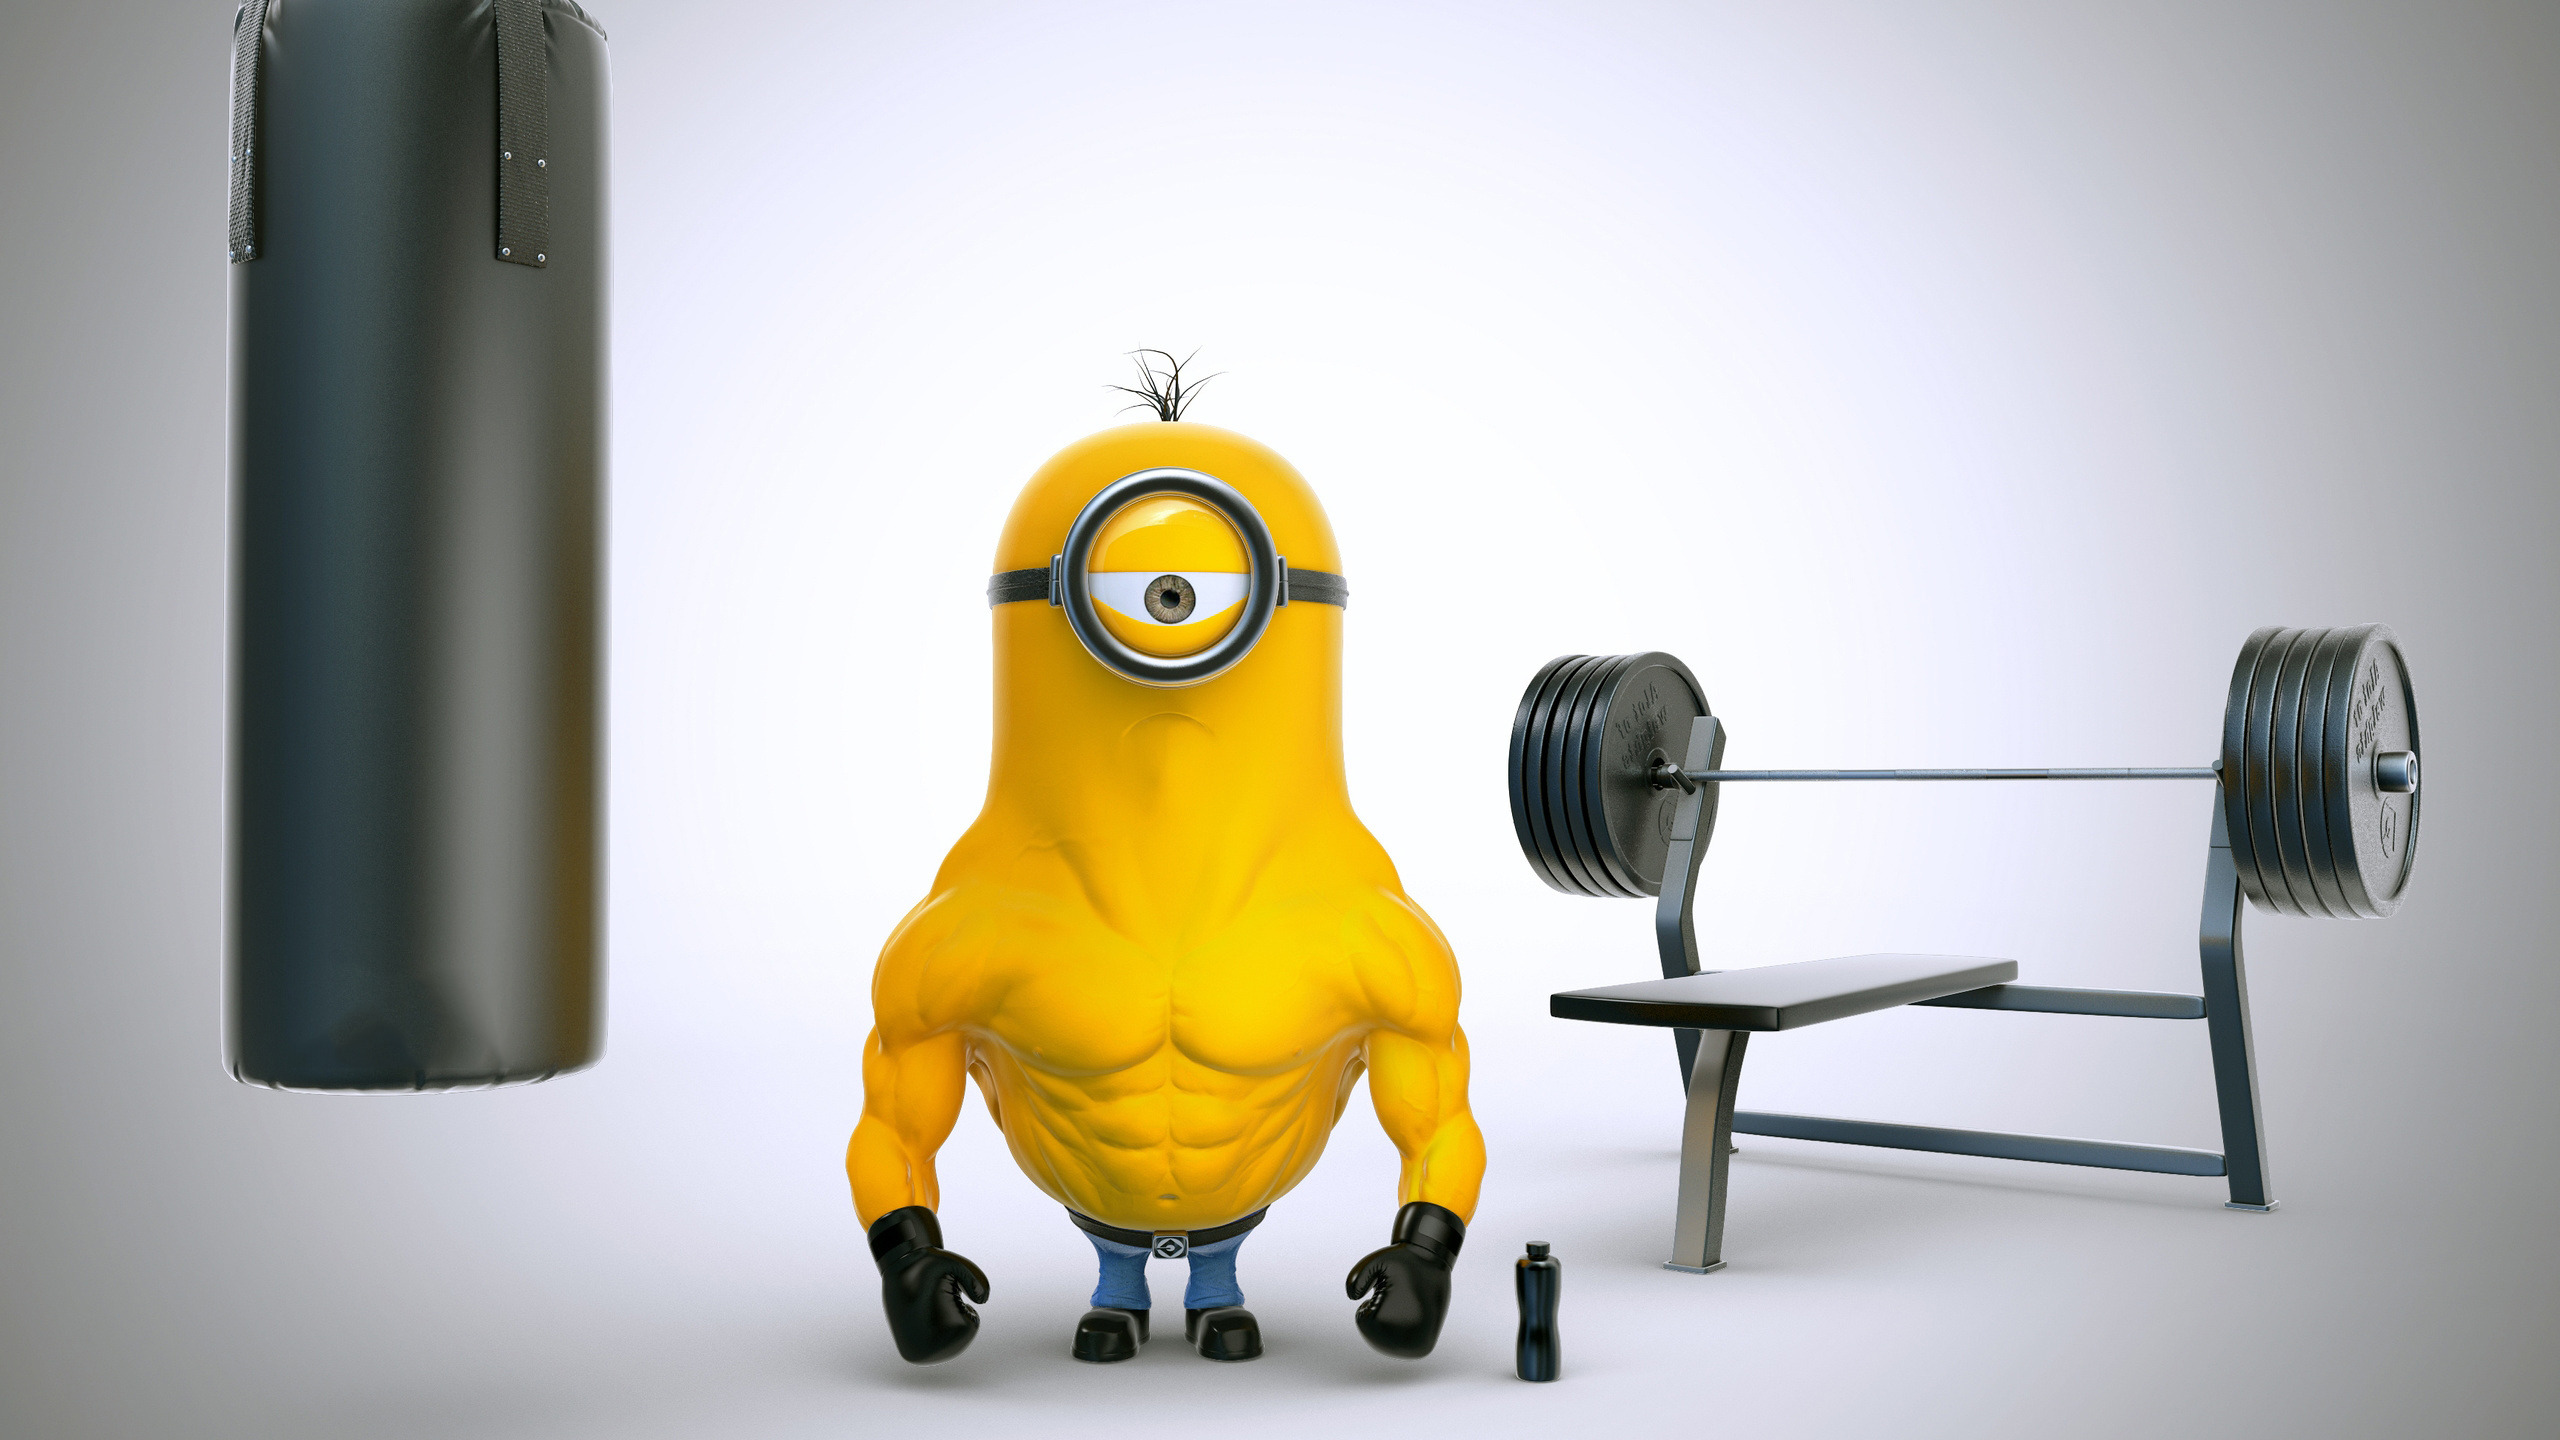 Minion wallpaper 29780 2560x1440